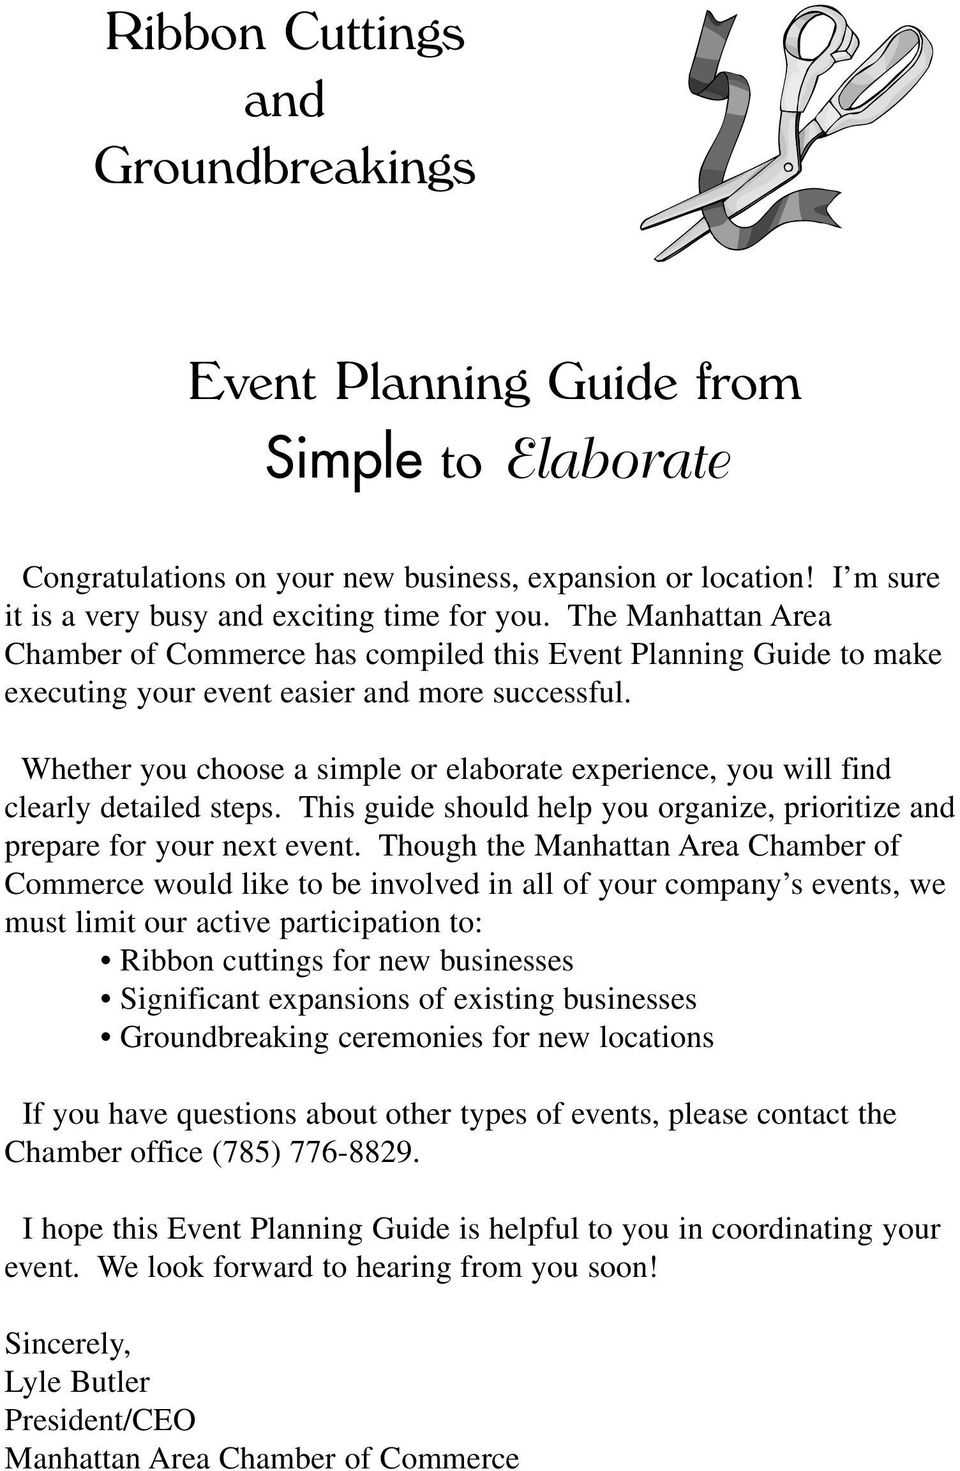 Whether you choose a simple or elaborate experience, you will find clearly detailed steps. This guide should help you organize, prioritize and prepare for your next event.